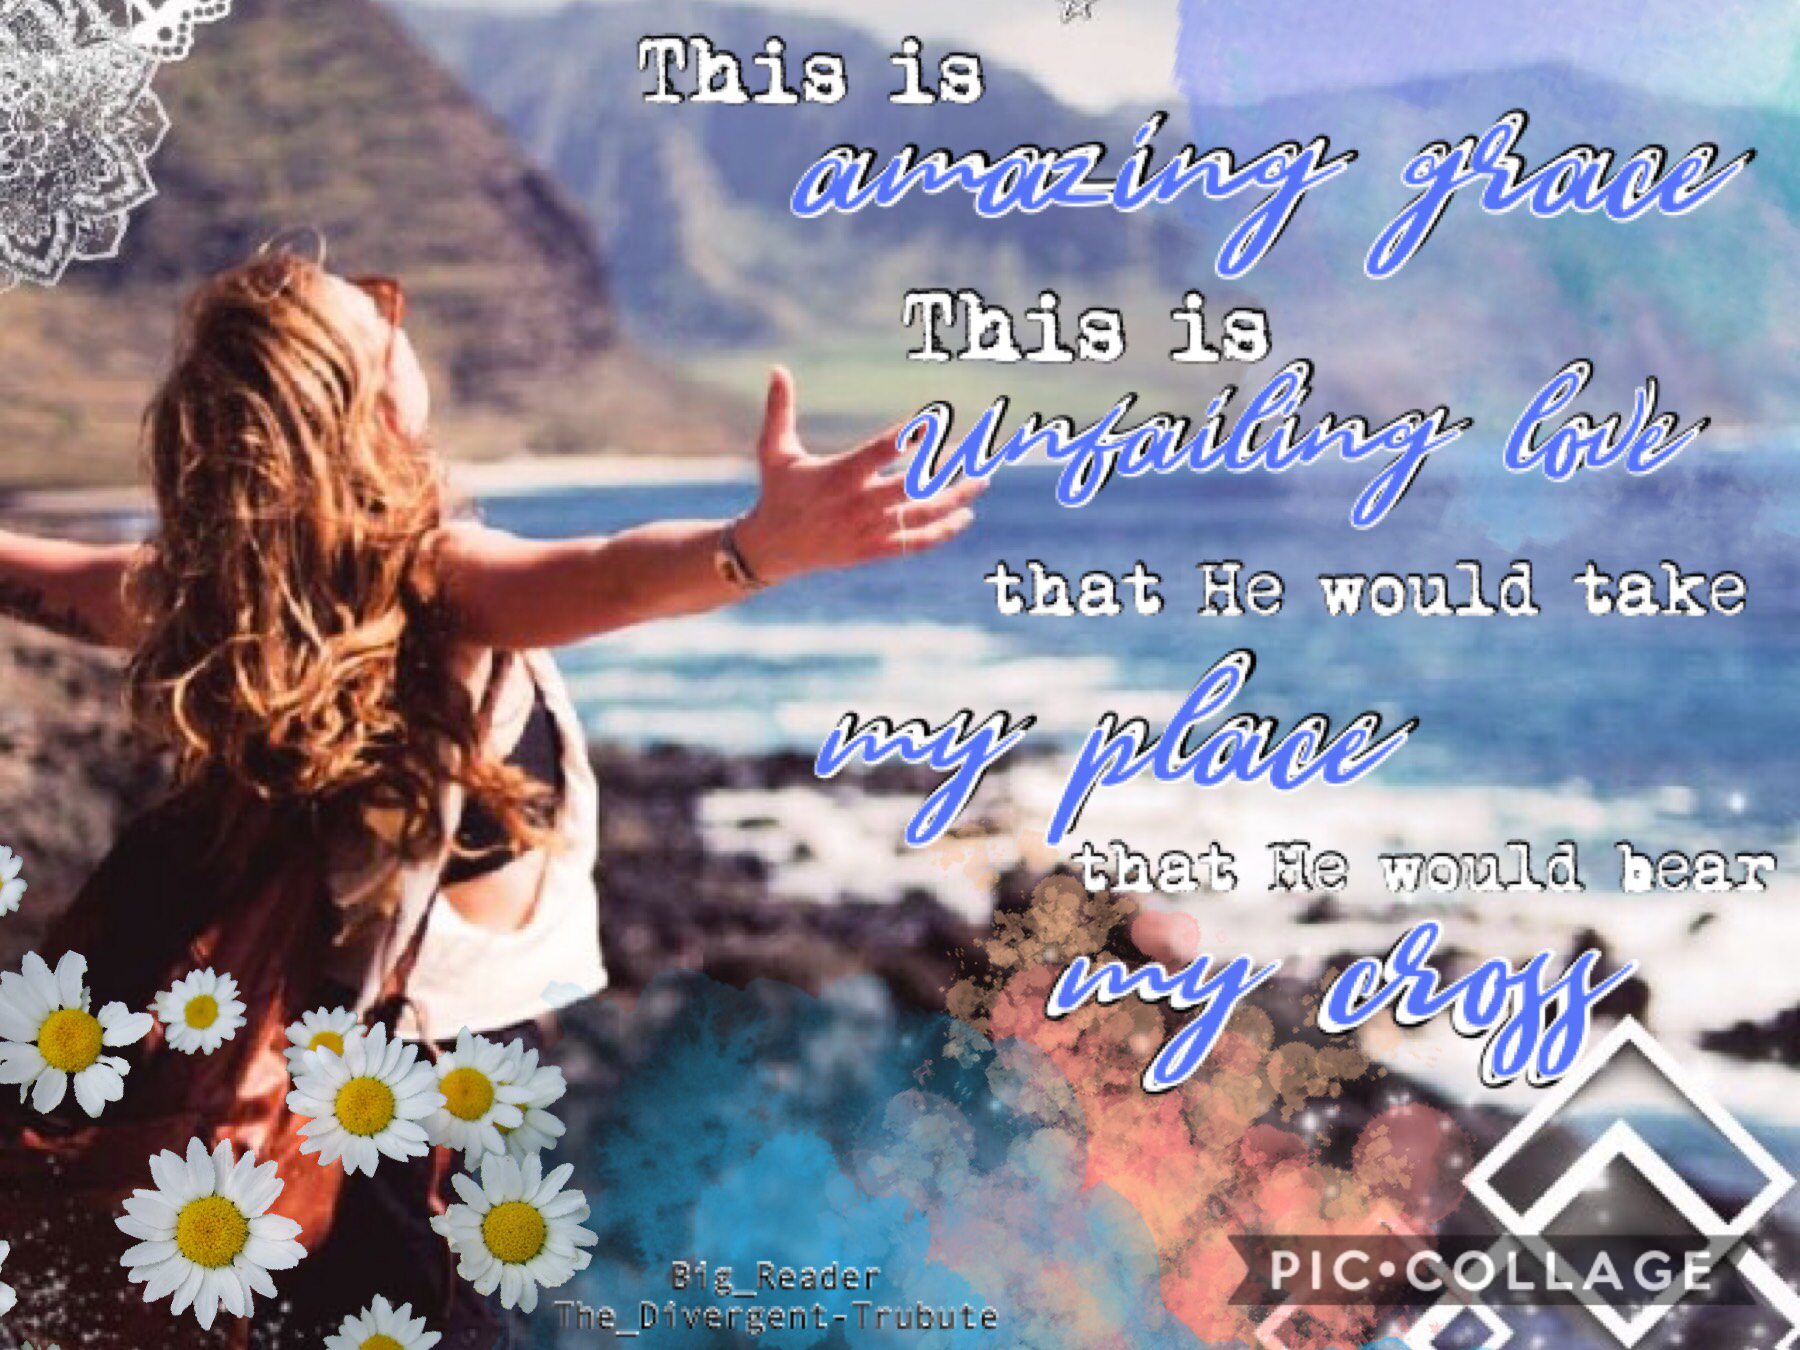 """Collab with The_Divergent-Tribute ! """"This is Amazing Grace"""" by Phil Whikham ✝️ such an amazing song! Please follow The_Divergent-Tribute! She's so talented and sweet!! She did the background and I did the text✨QOTD:Have you entered my games yet?🧐"""